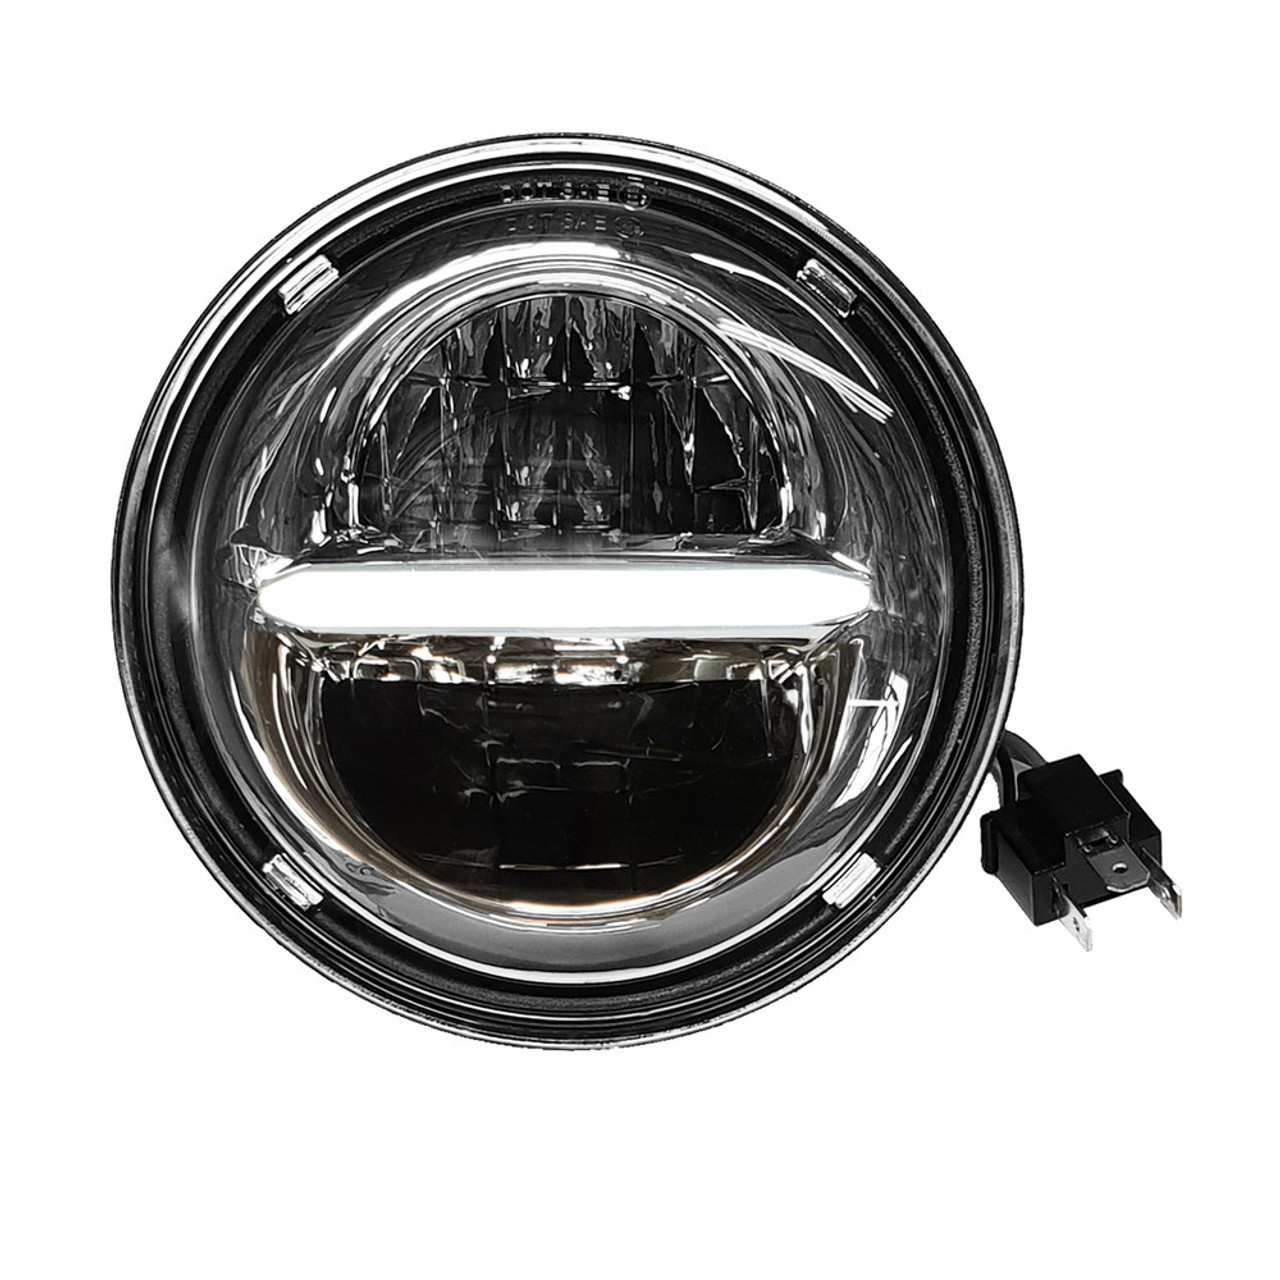 hight resolution of pathfinderled chrome 7 in classic headlight w daytime running lights hd7clc